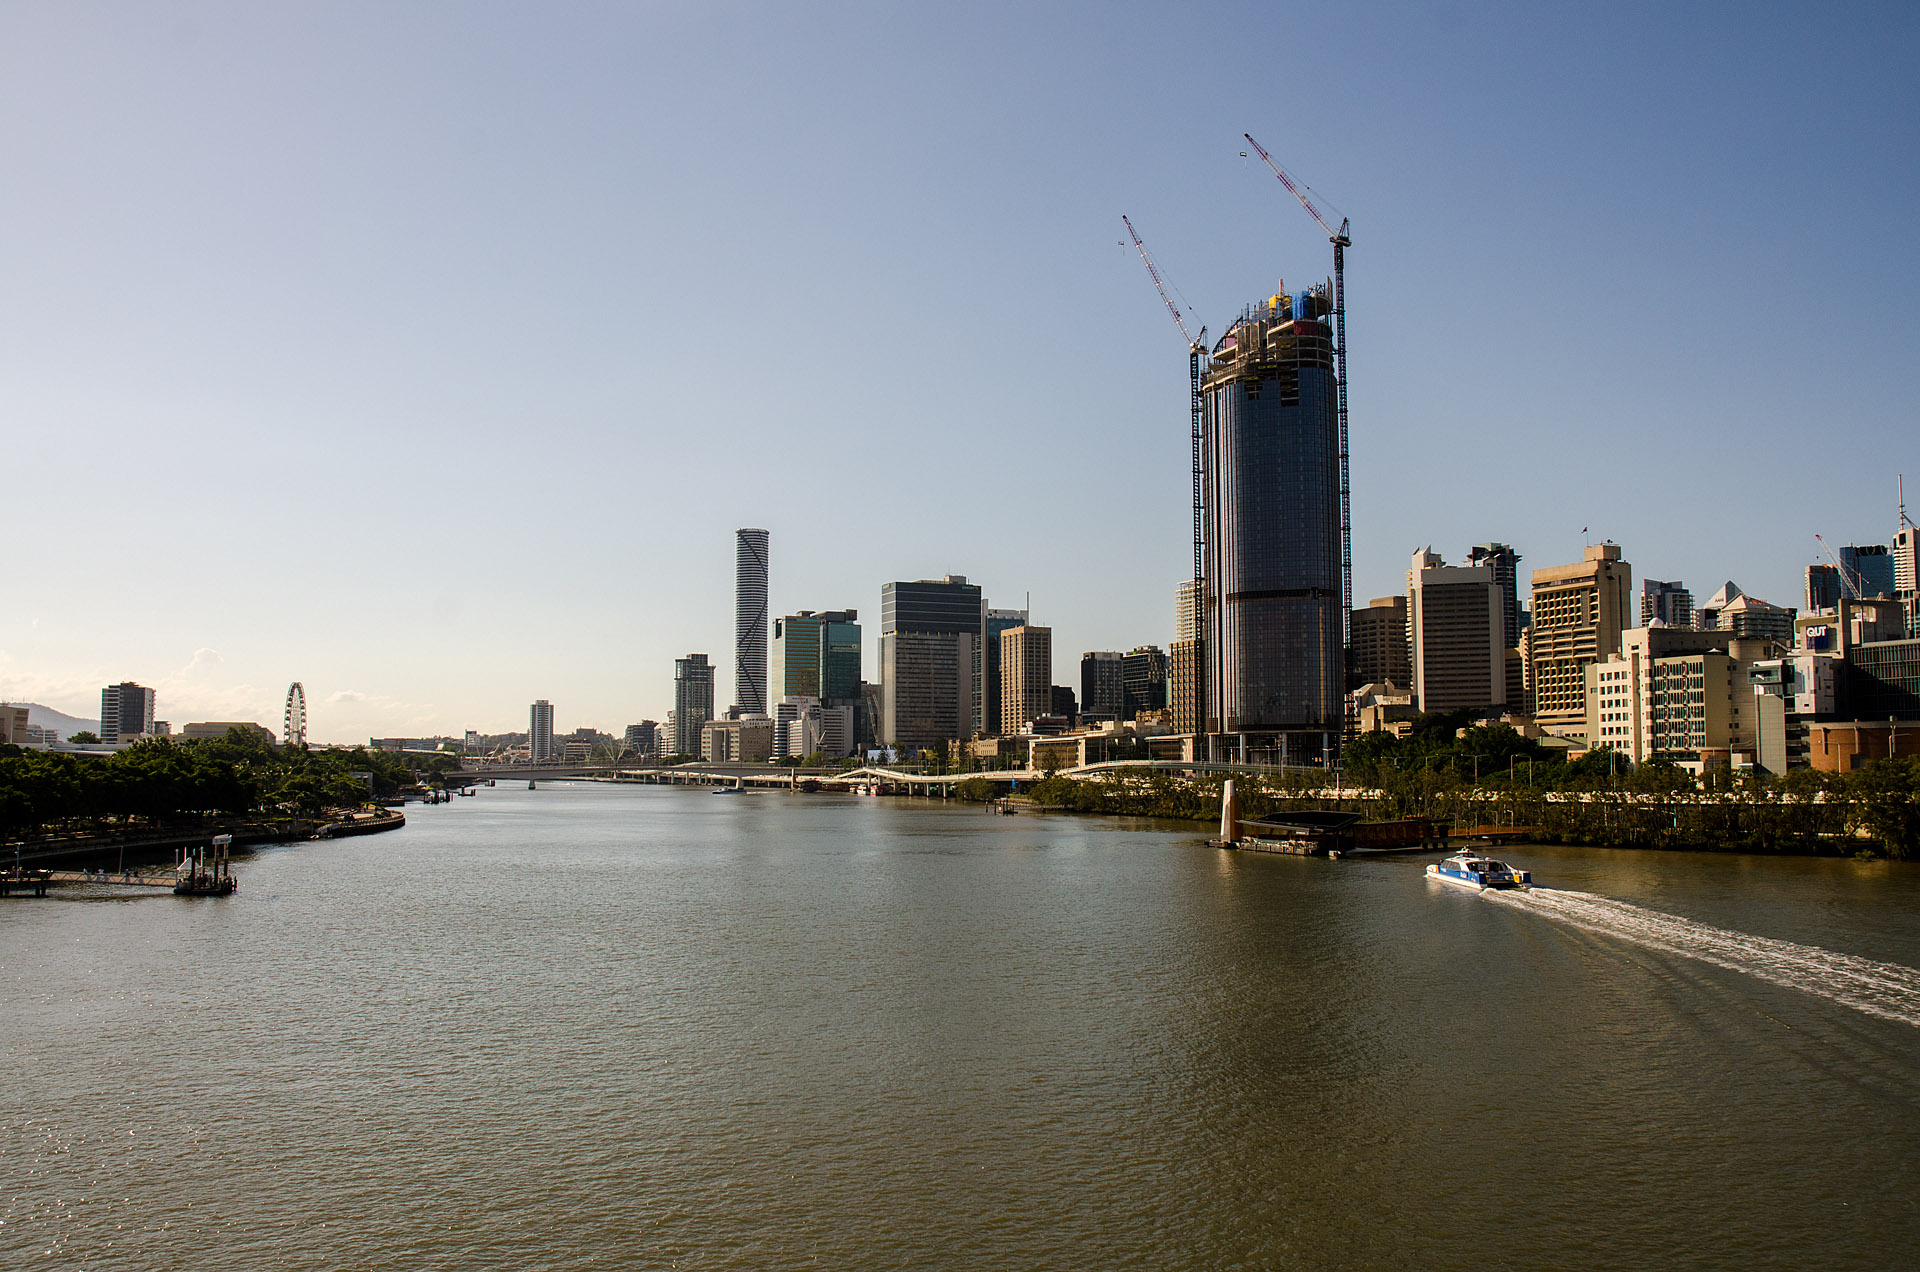 Downtown Brisbane from the Goodwill Bridge